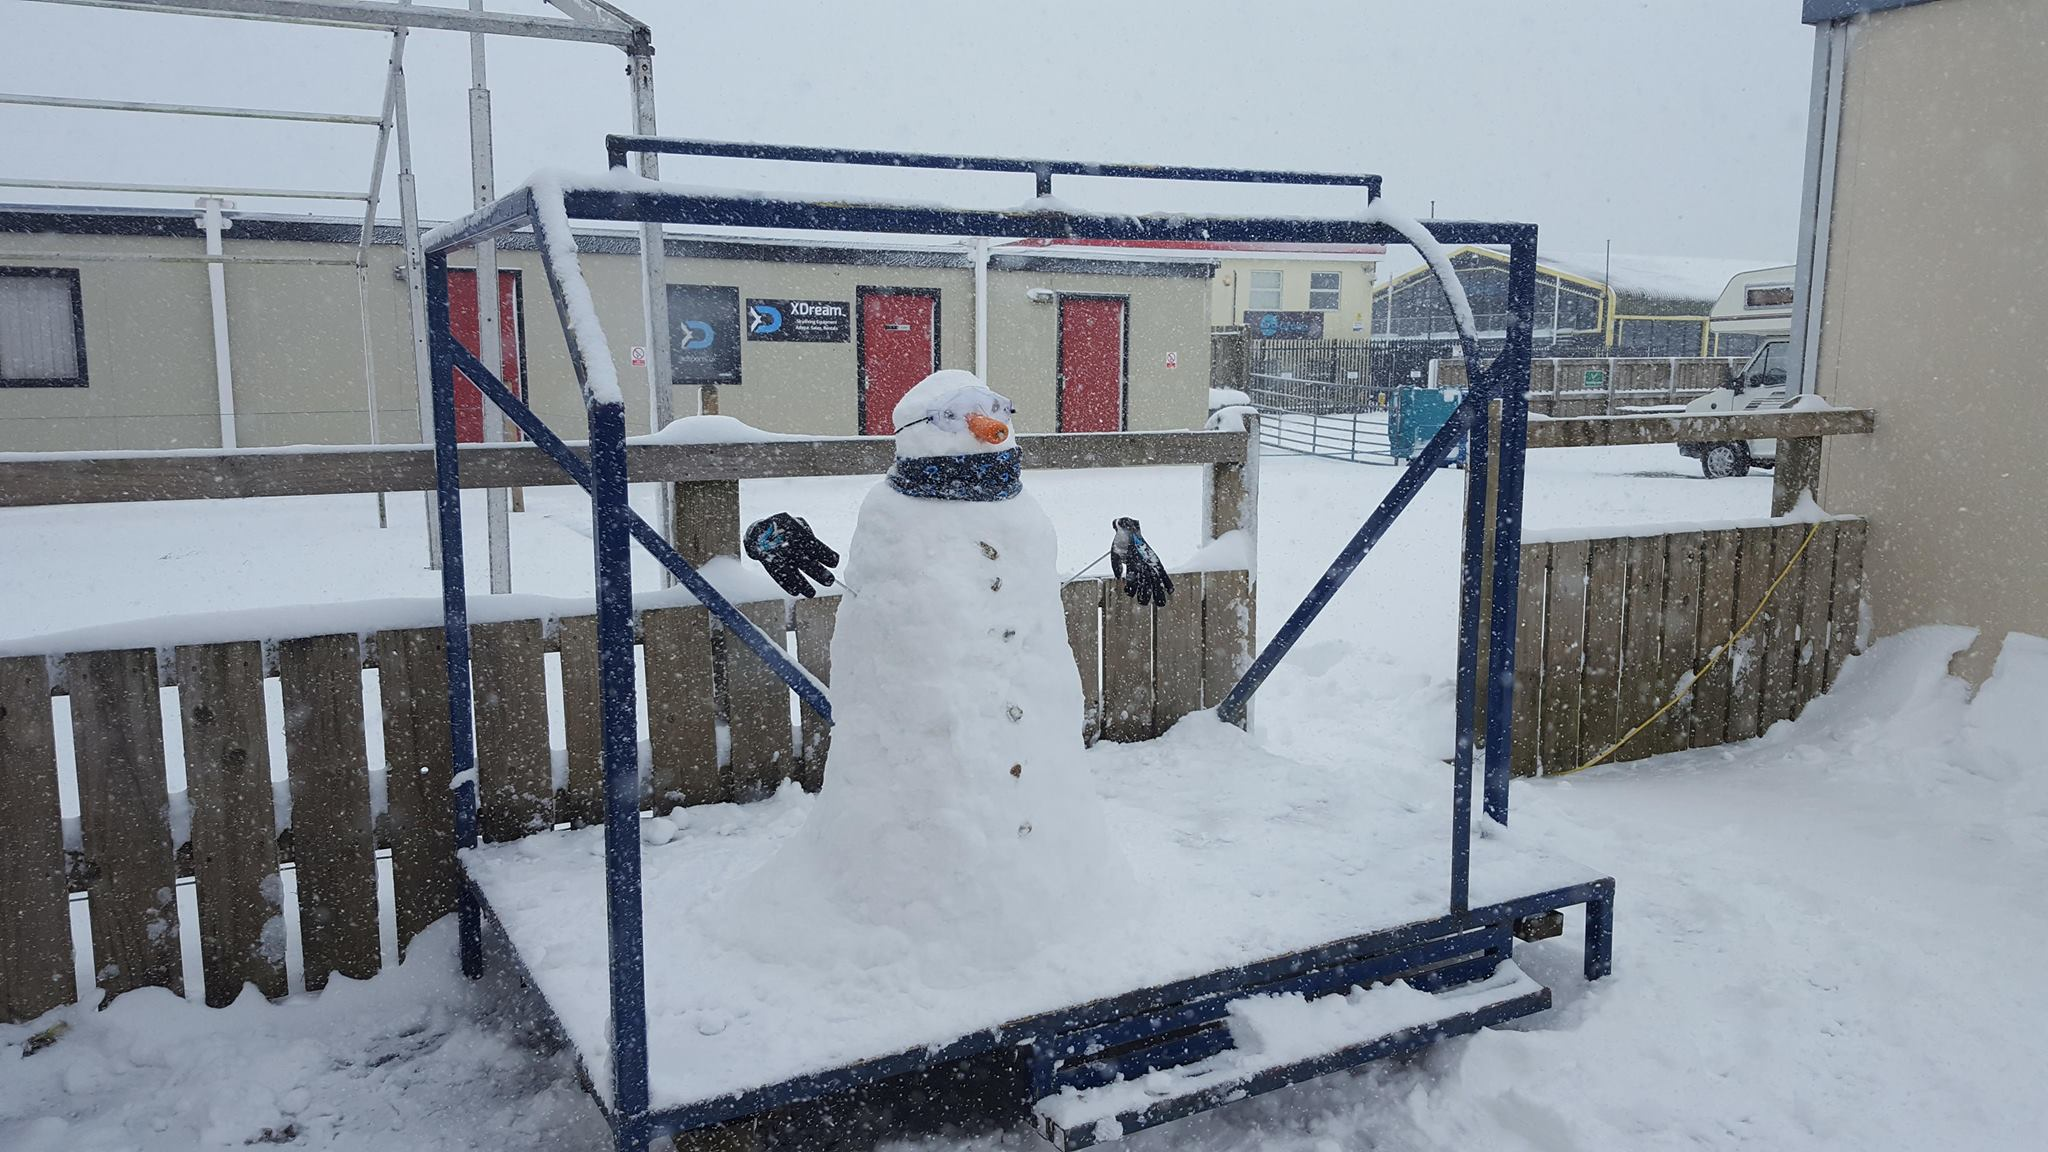 XDream Snowman at Dunkeswell